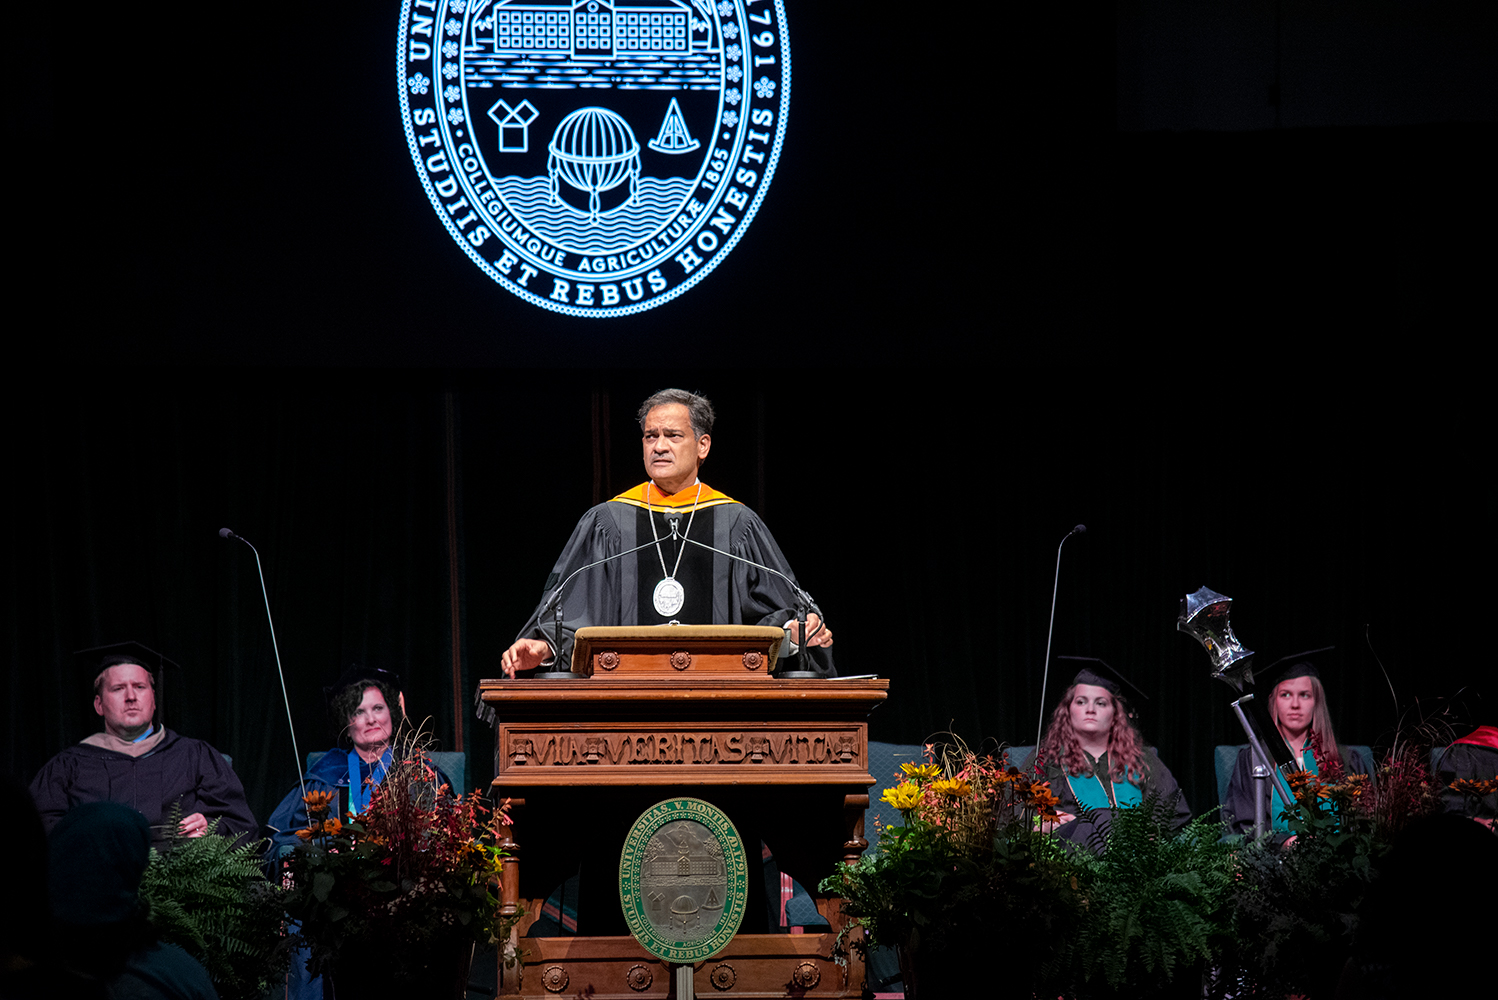 President Suresh Garimella speaks at convocation, Aug. 25. The University seal hangs on the podium and is projected on the curtain behind him.